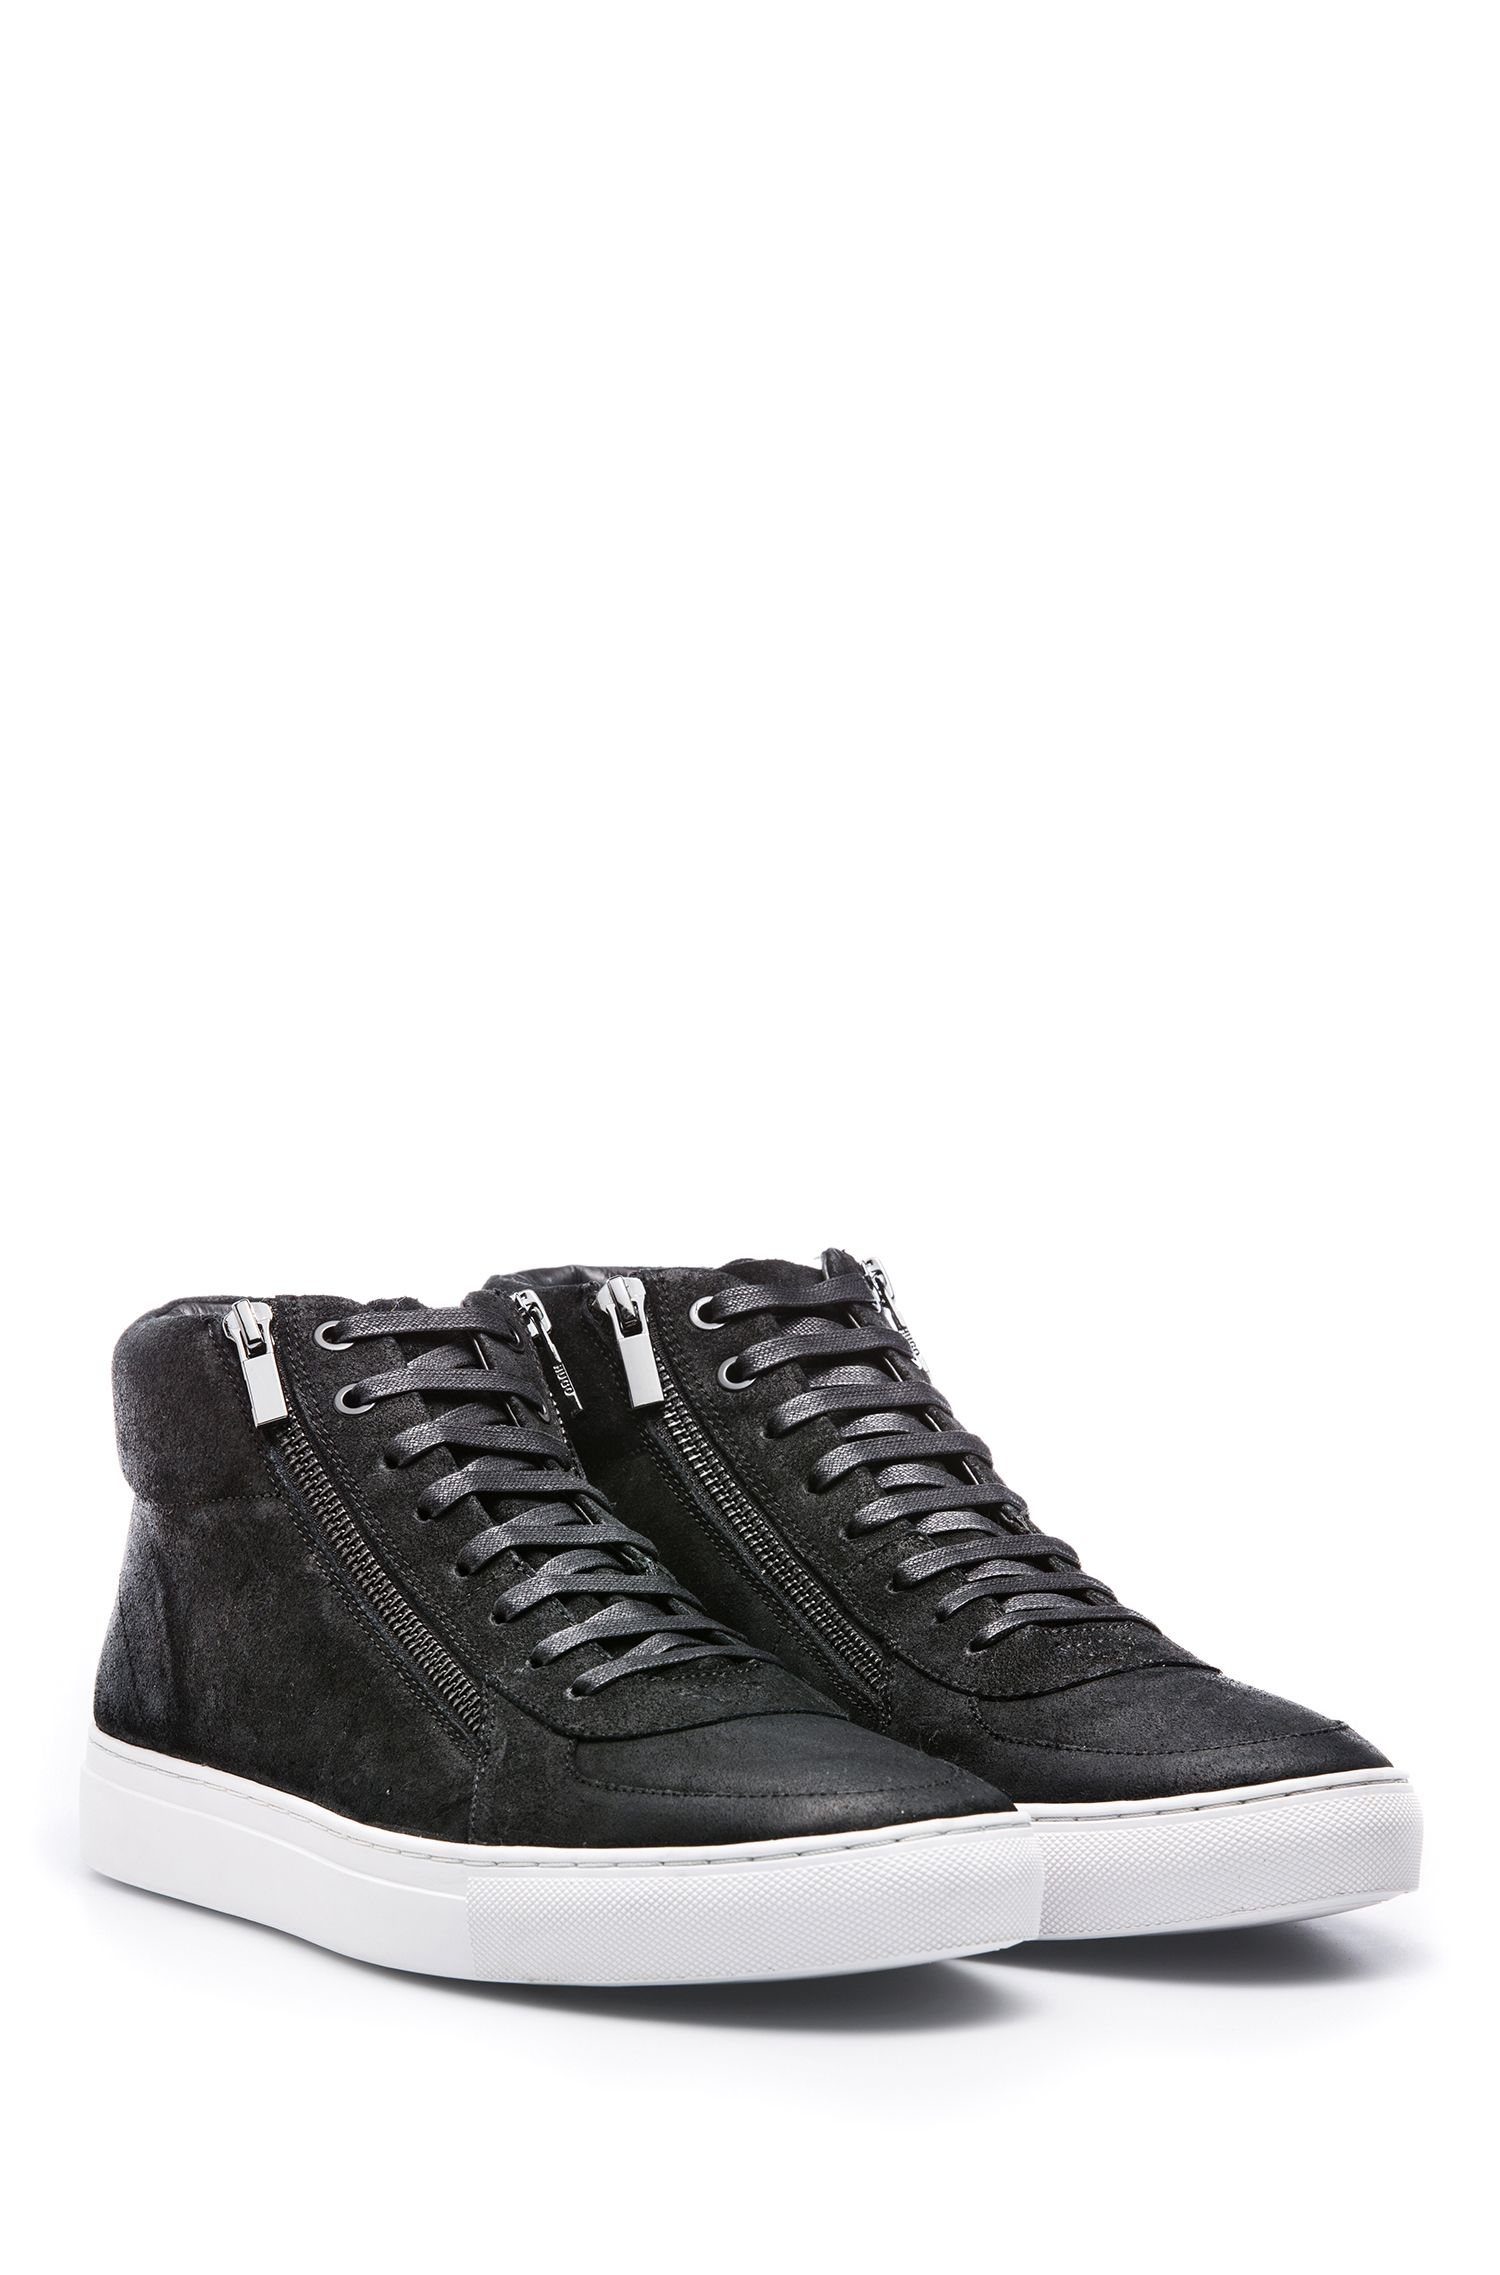 Sneakers high-top in pelle scamosciata cerata con doppia zip